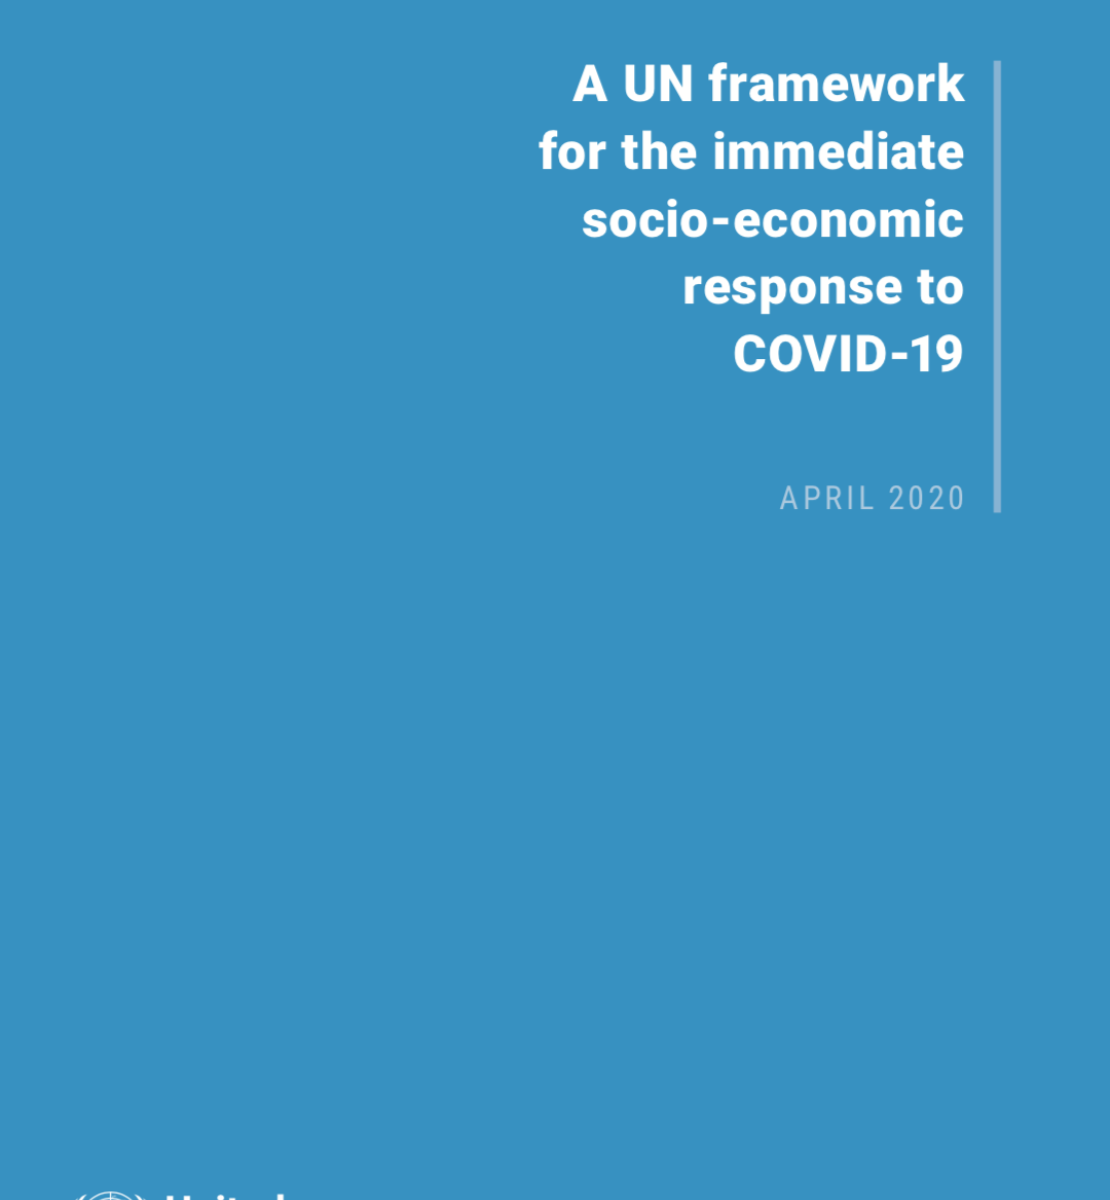 """Cover shows the title """"A UN framework for the immediate socio-economic response to COVID-19"""" against a solid blue background with the UN emblem on the lower left side."""